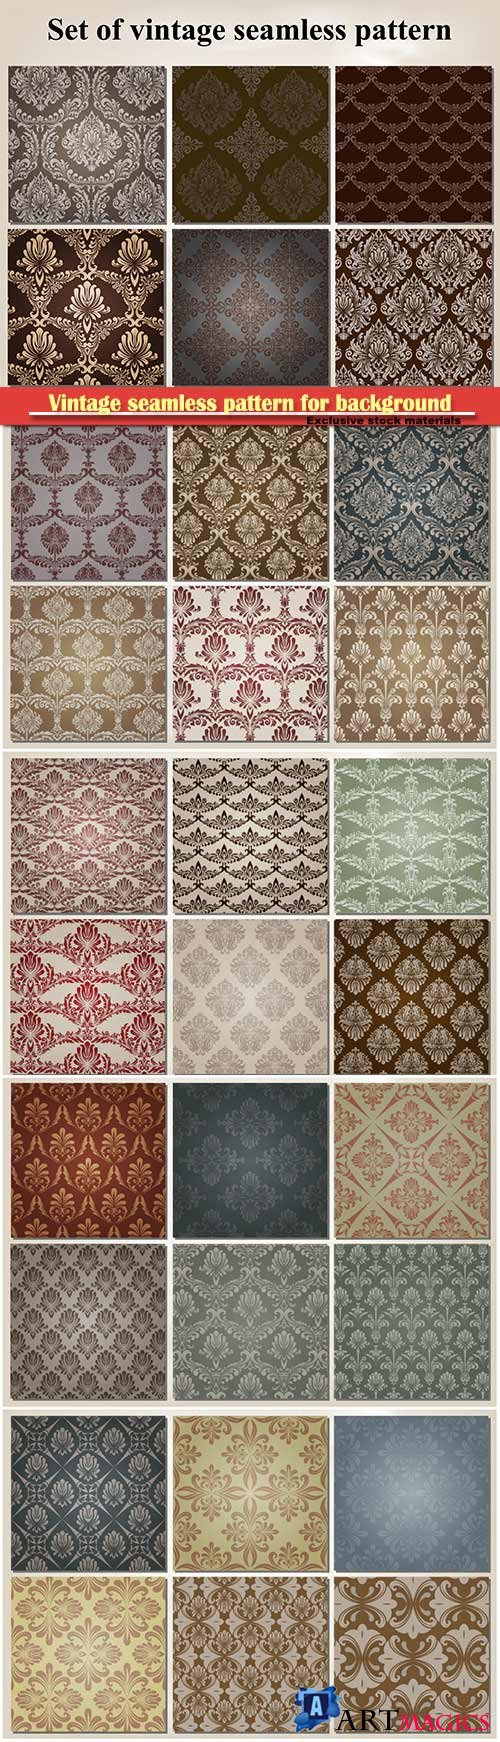 Vintage seamless pattern for background, pattern in swatches